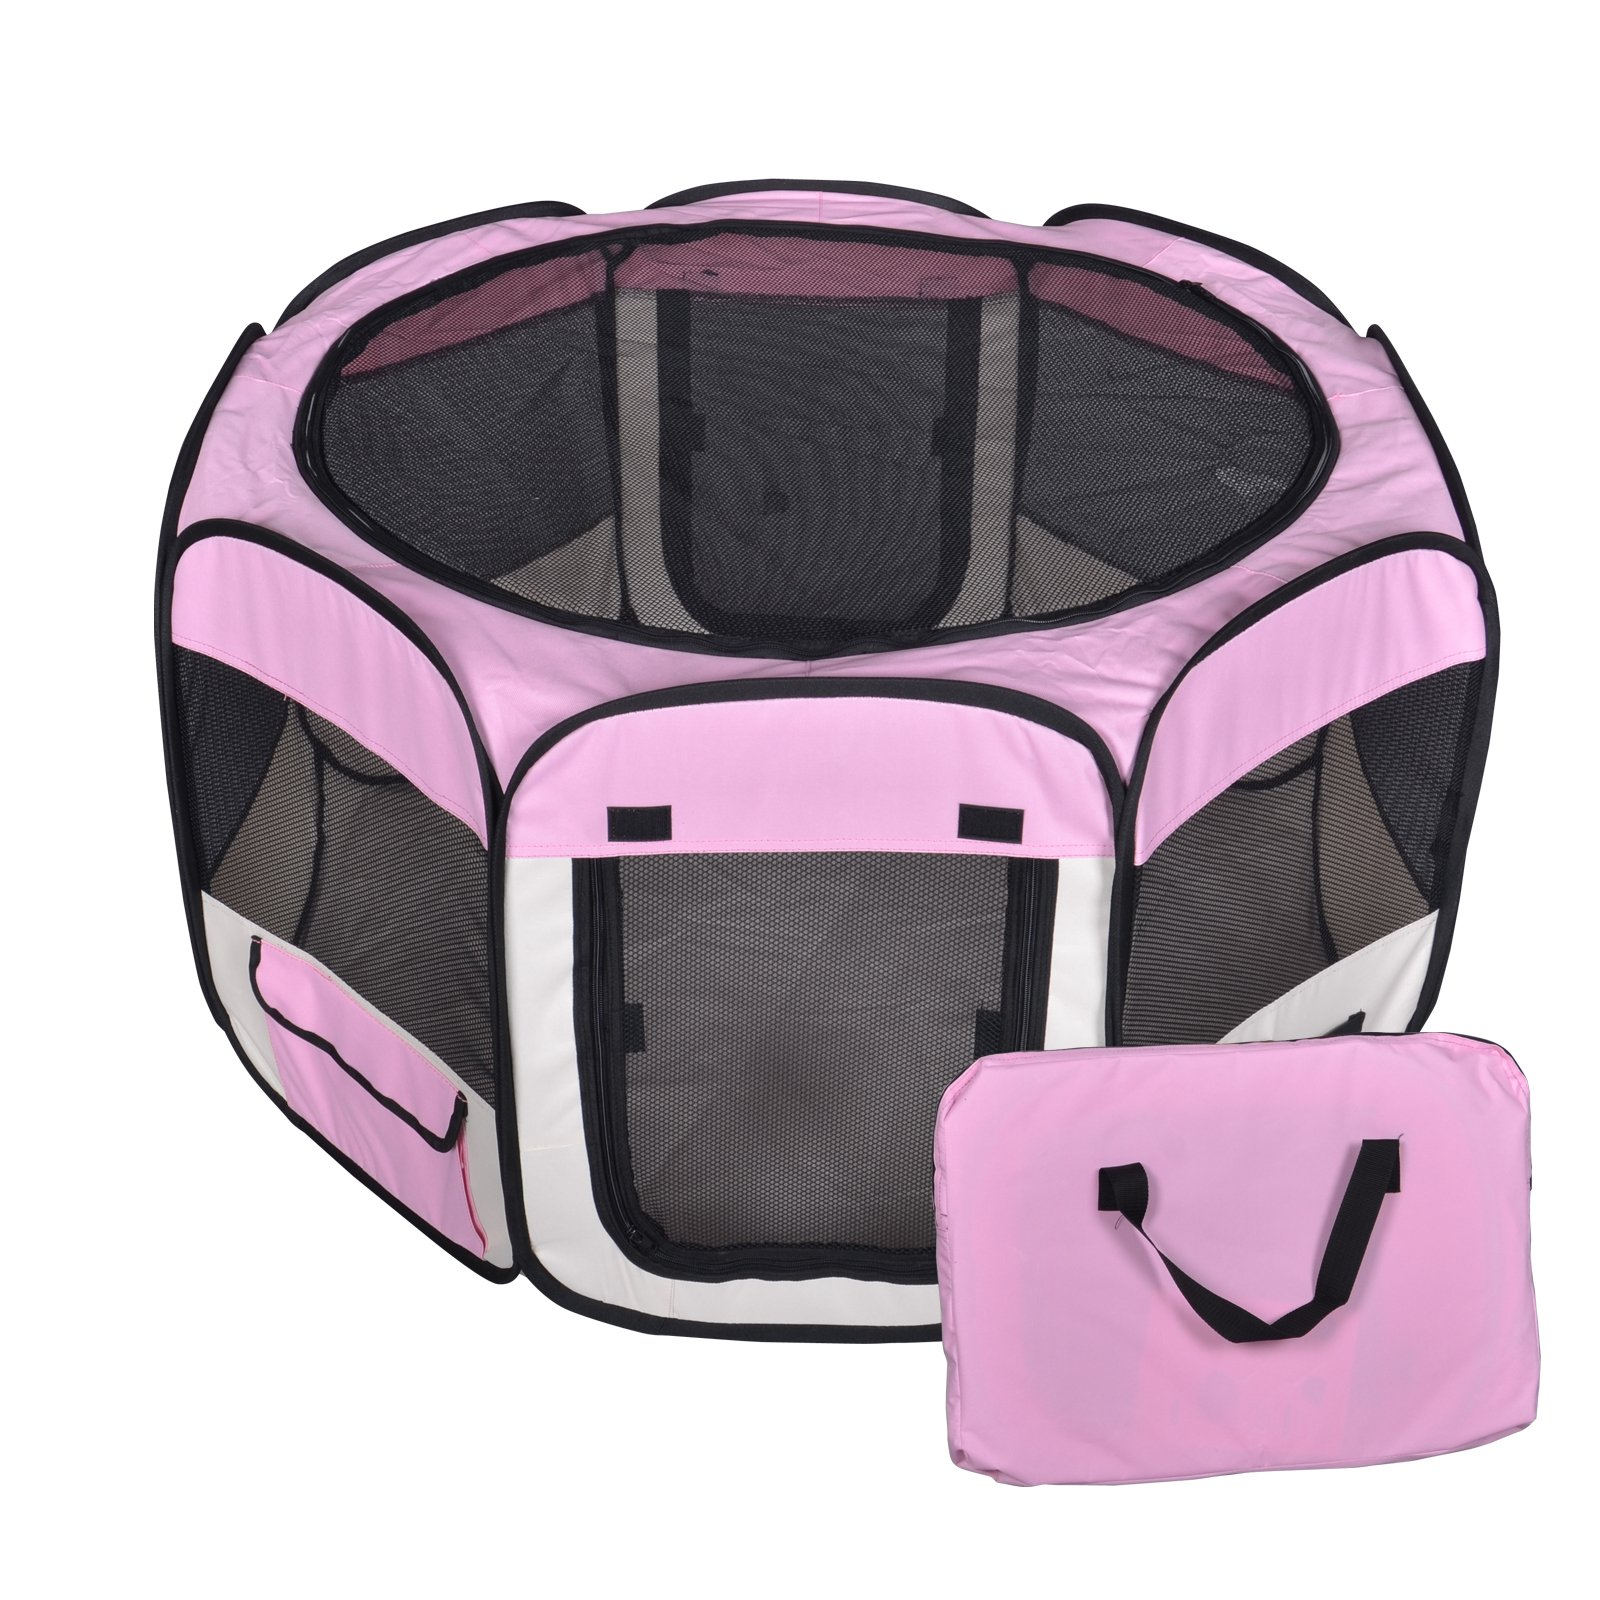 New Large Pink Pet Dog Cat Tent Playpen Exercise Play Pen Soft Crate T08